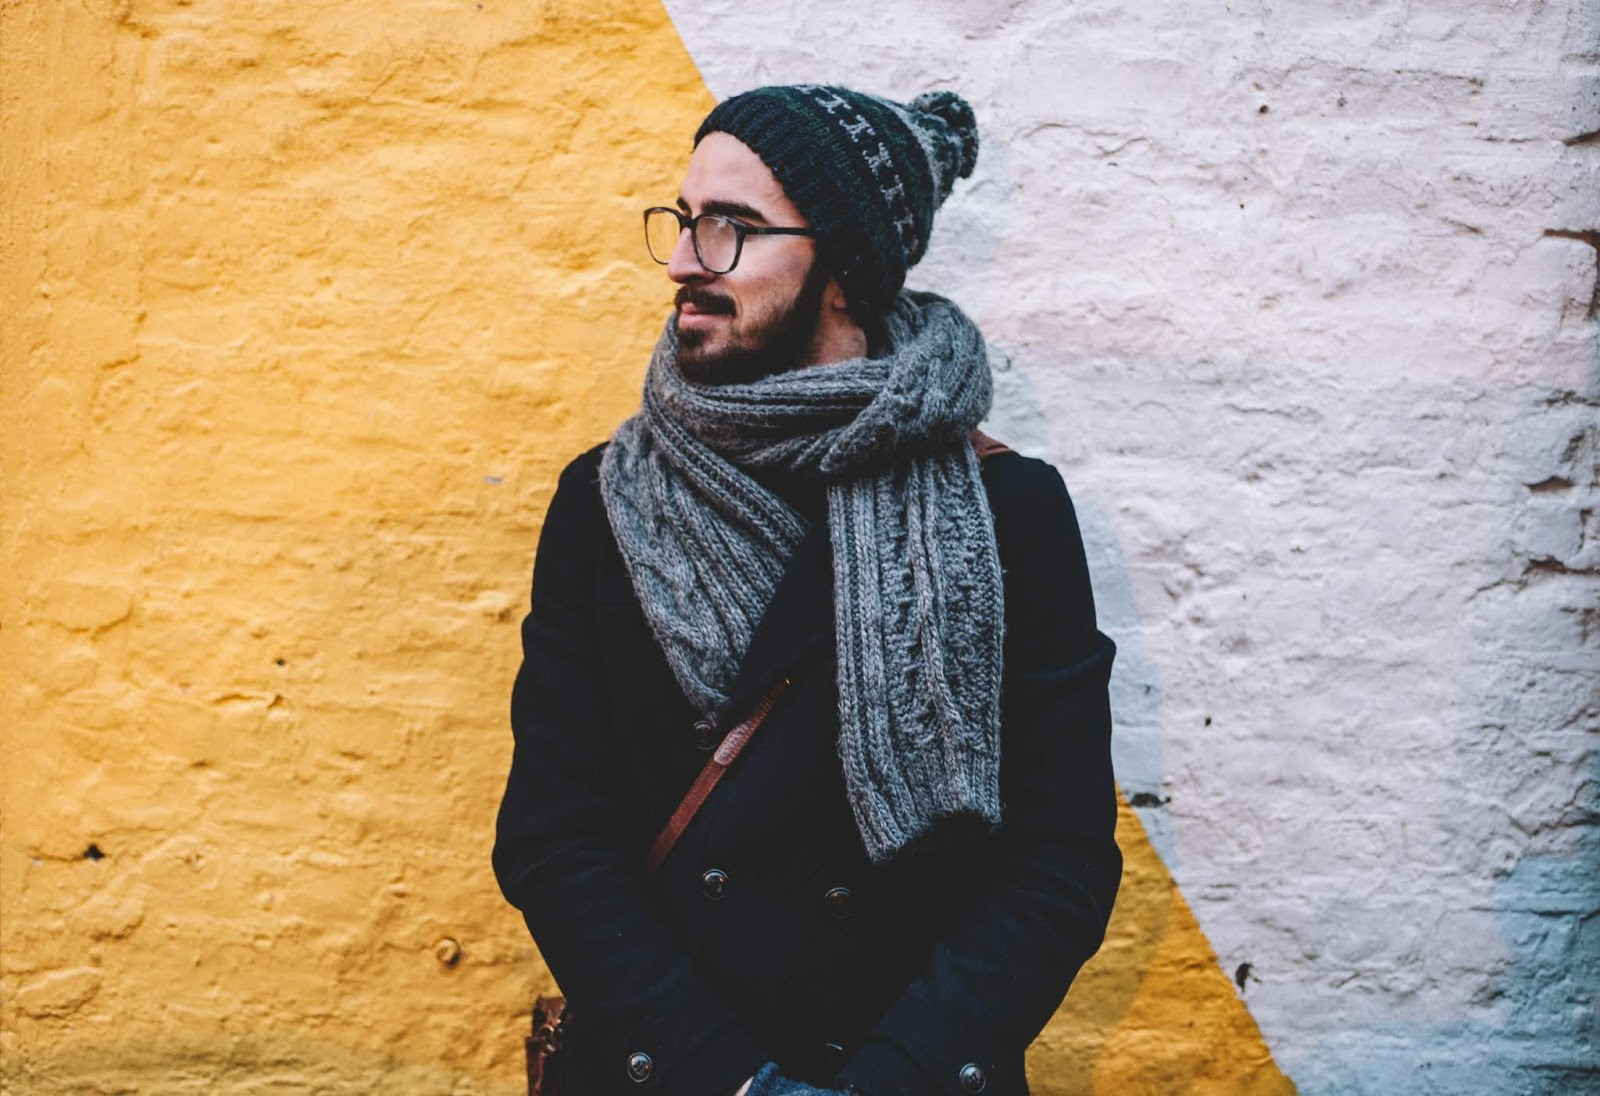 fashion beauty blogger hunting gear outfit ideas pictures man wearing stylish scarf and glasses